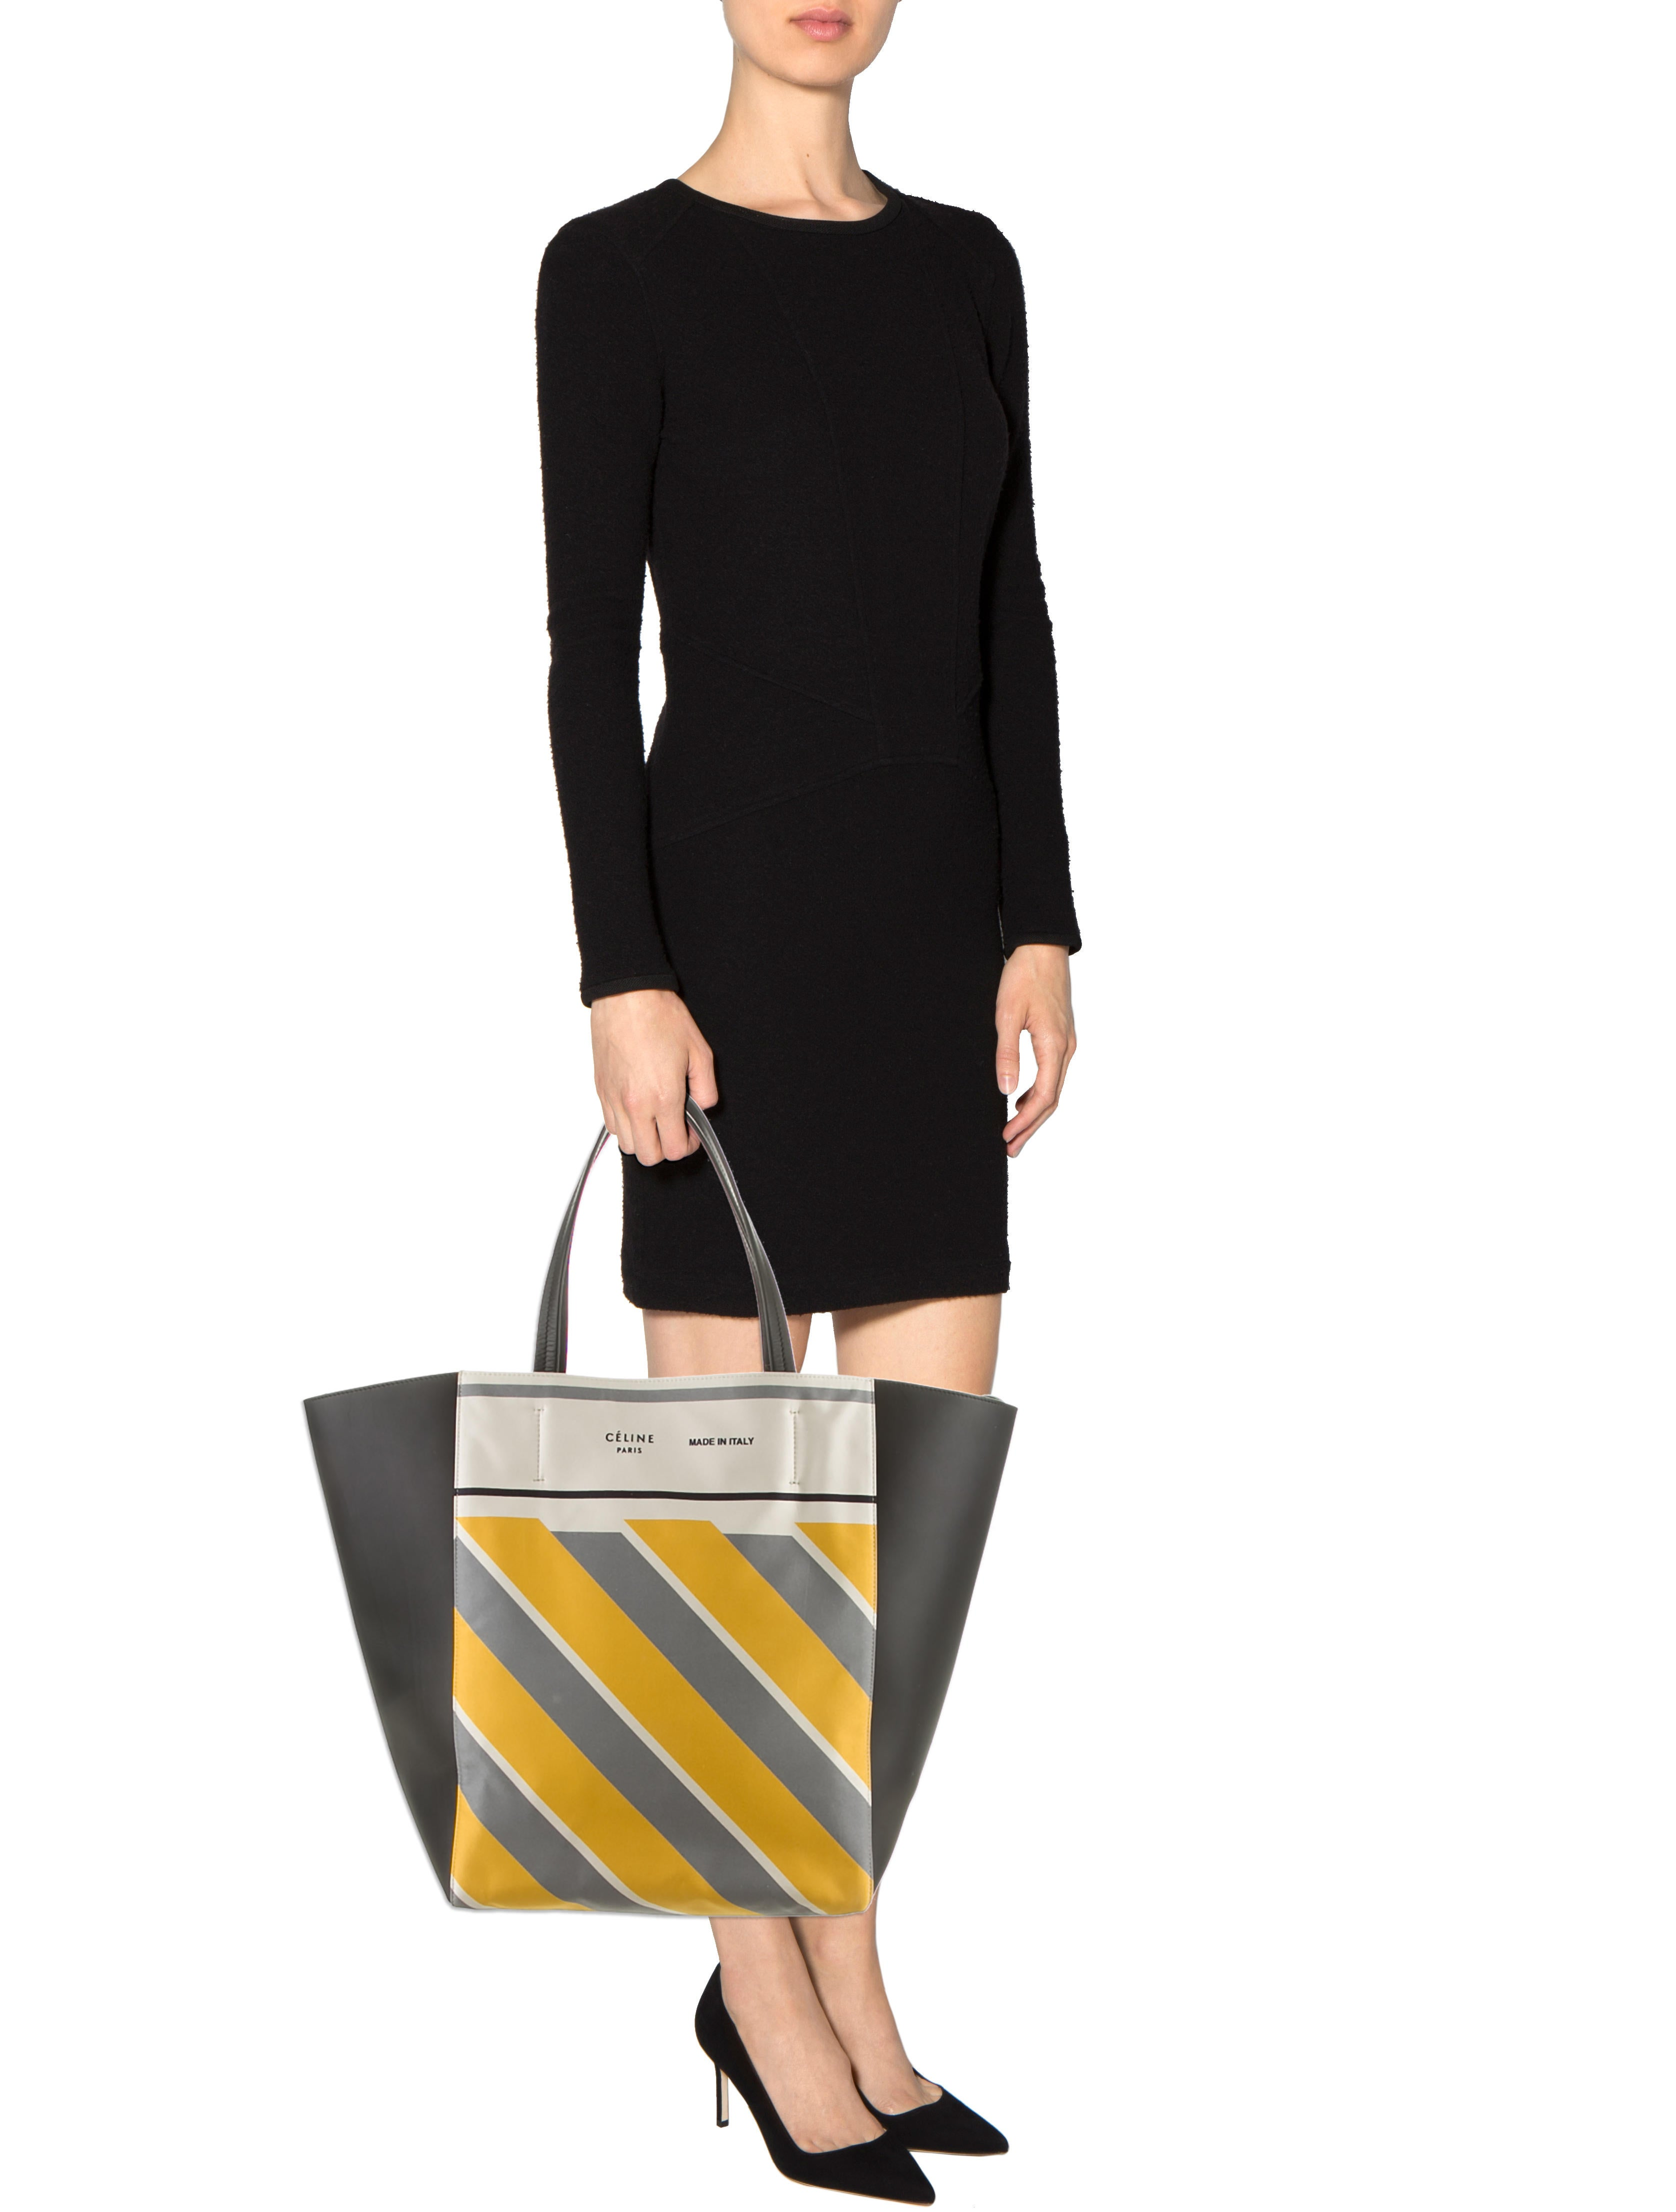 celine horizontal gusset cabas tote w tags